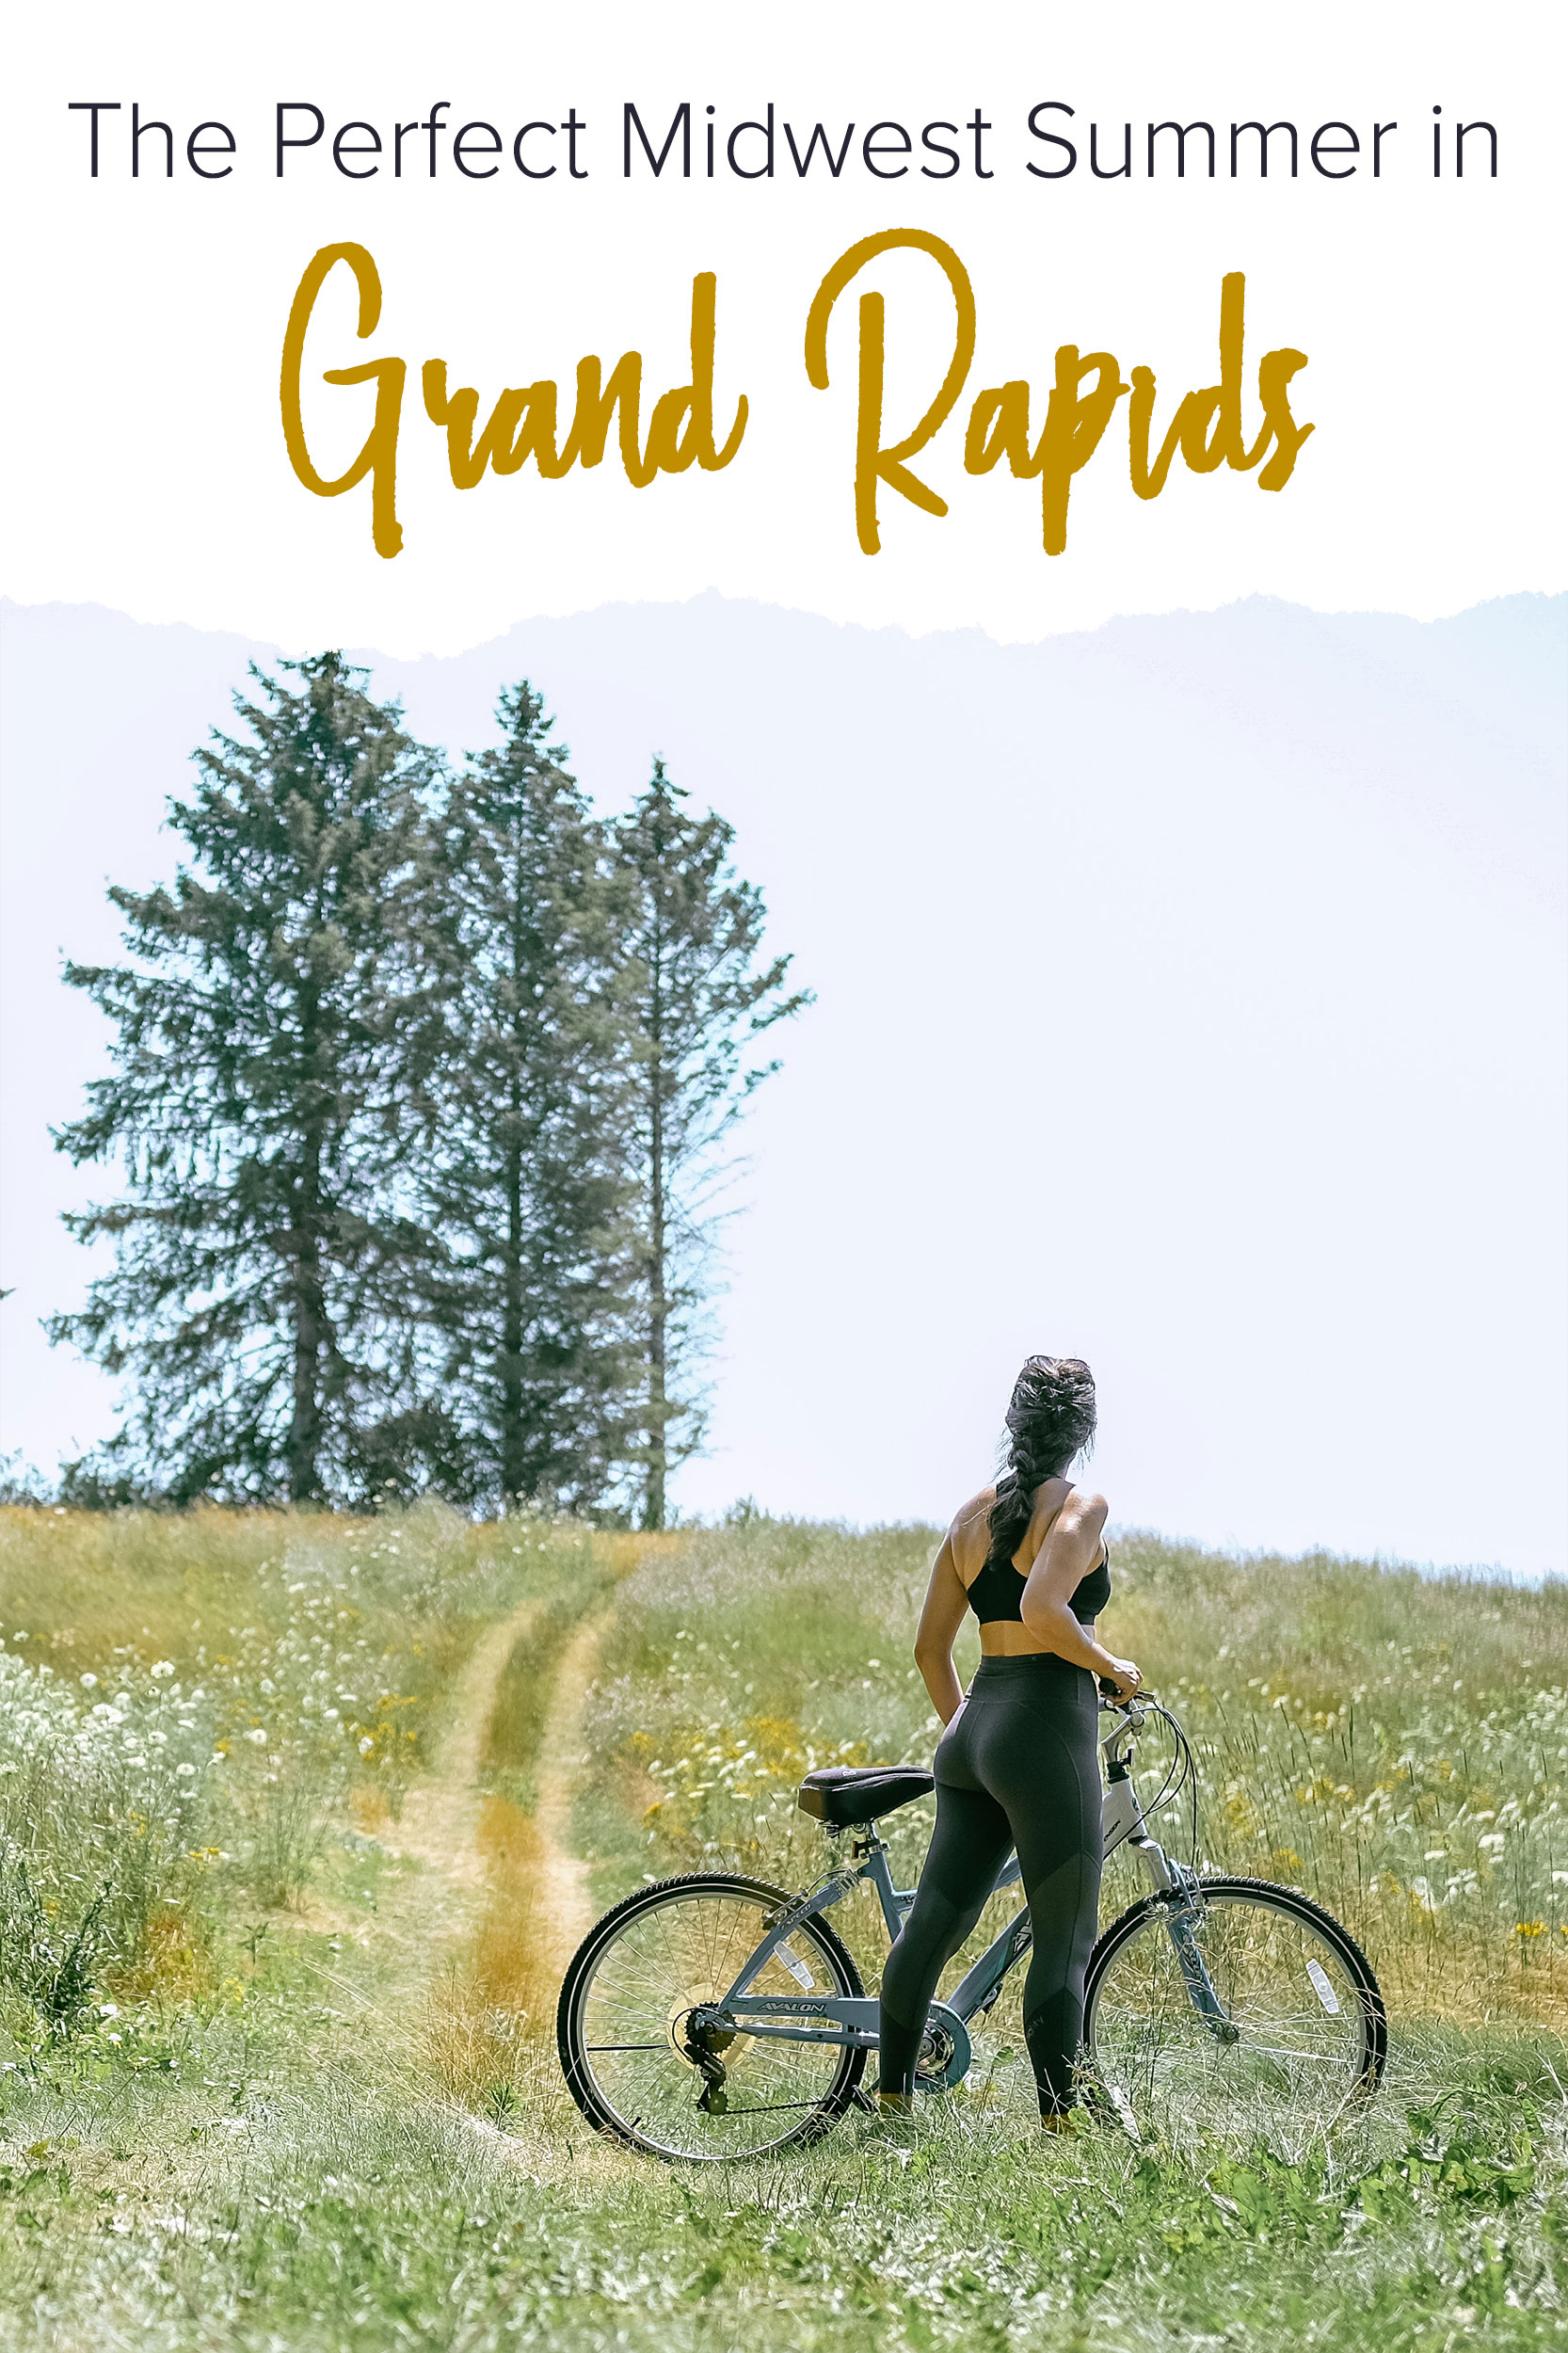 Rachel Off Duty: Why Grand Rapids, Michigan is Your Gateway to a Perfect Midwest Summer